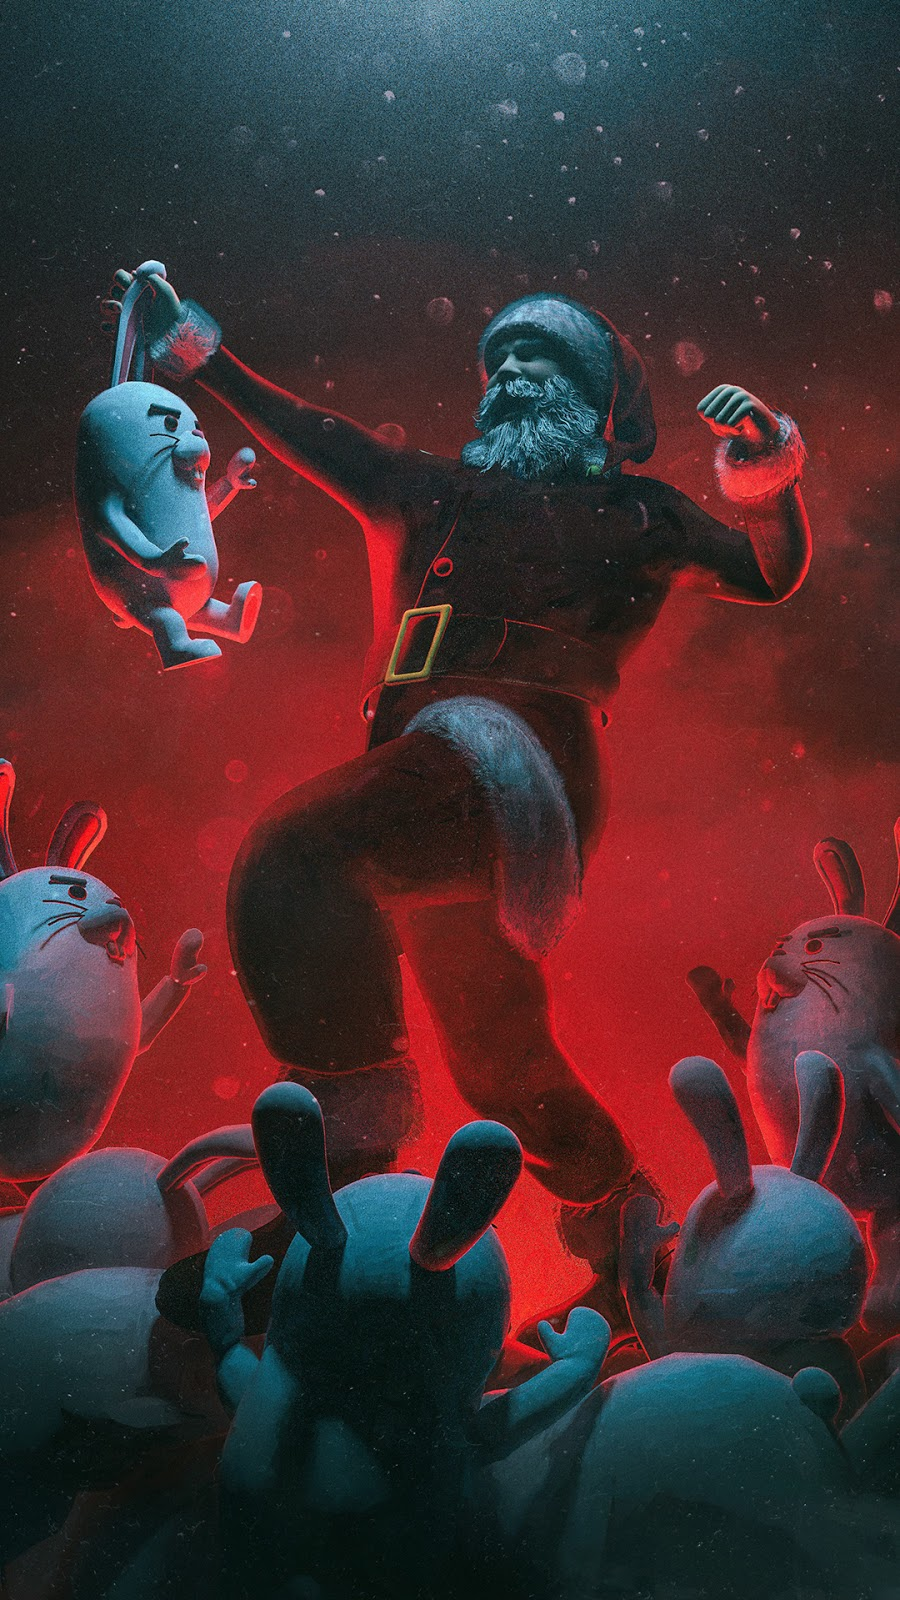 easter rabbit santa claus christmas